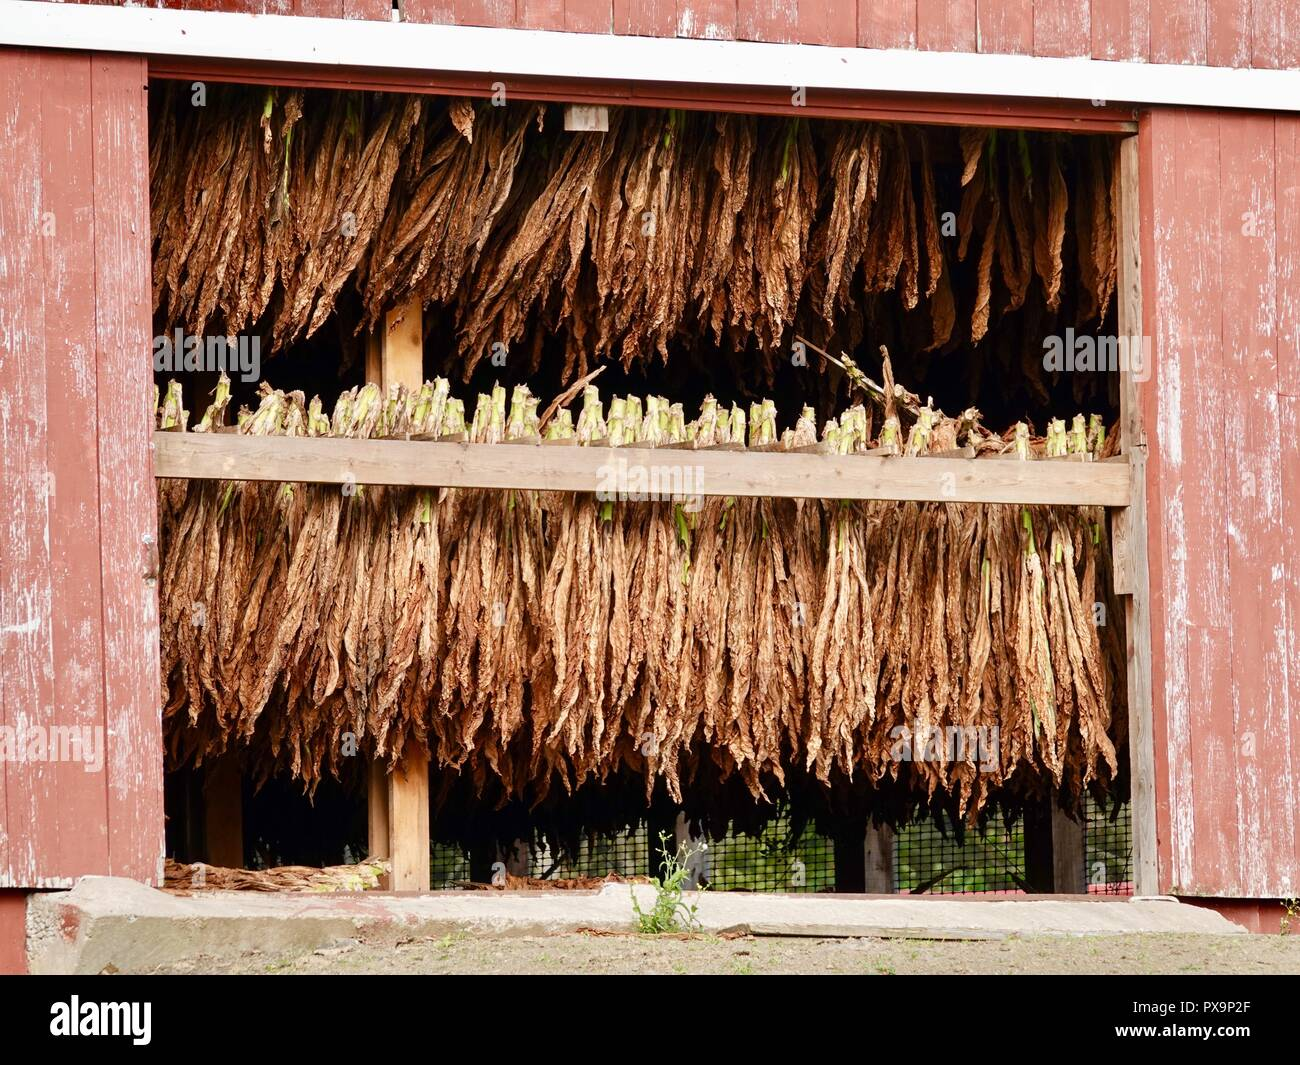 Tobacco leaves hanging upside down to dry in an Amish barn, Clinton County, Pennsylvania, USA. - Stock Image